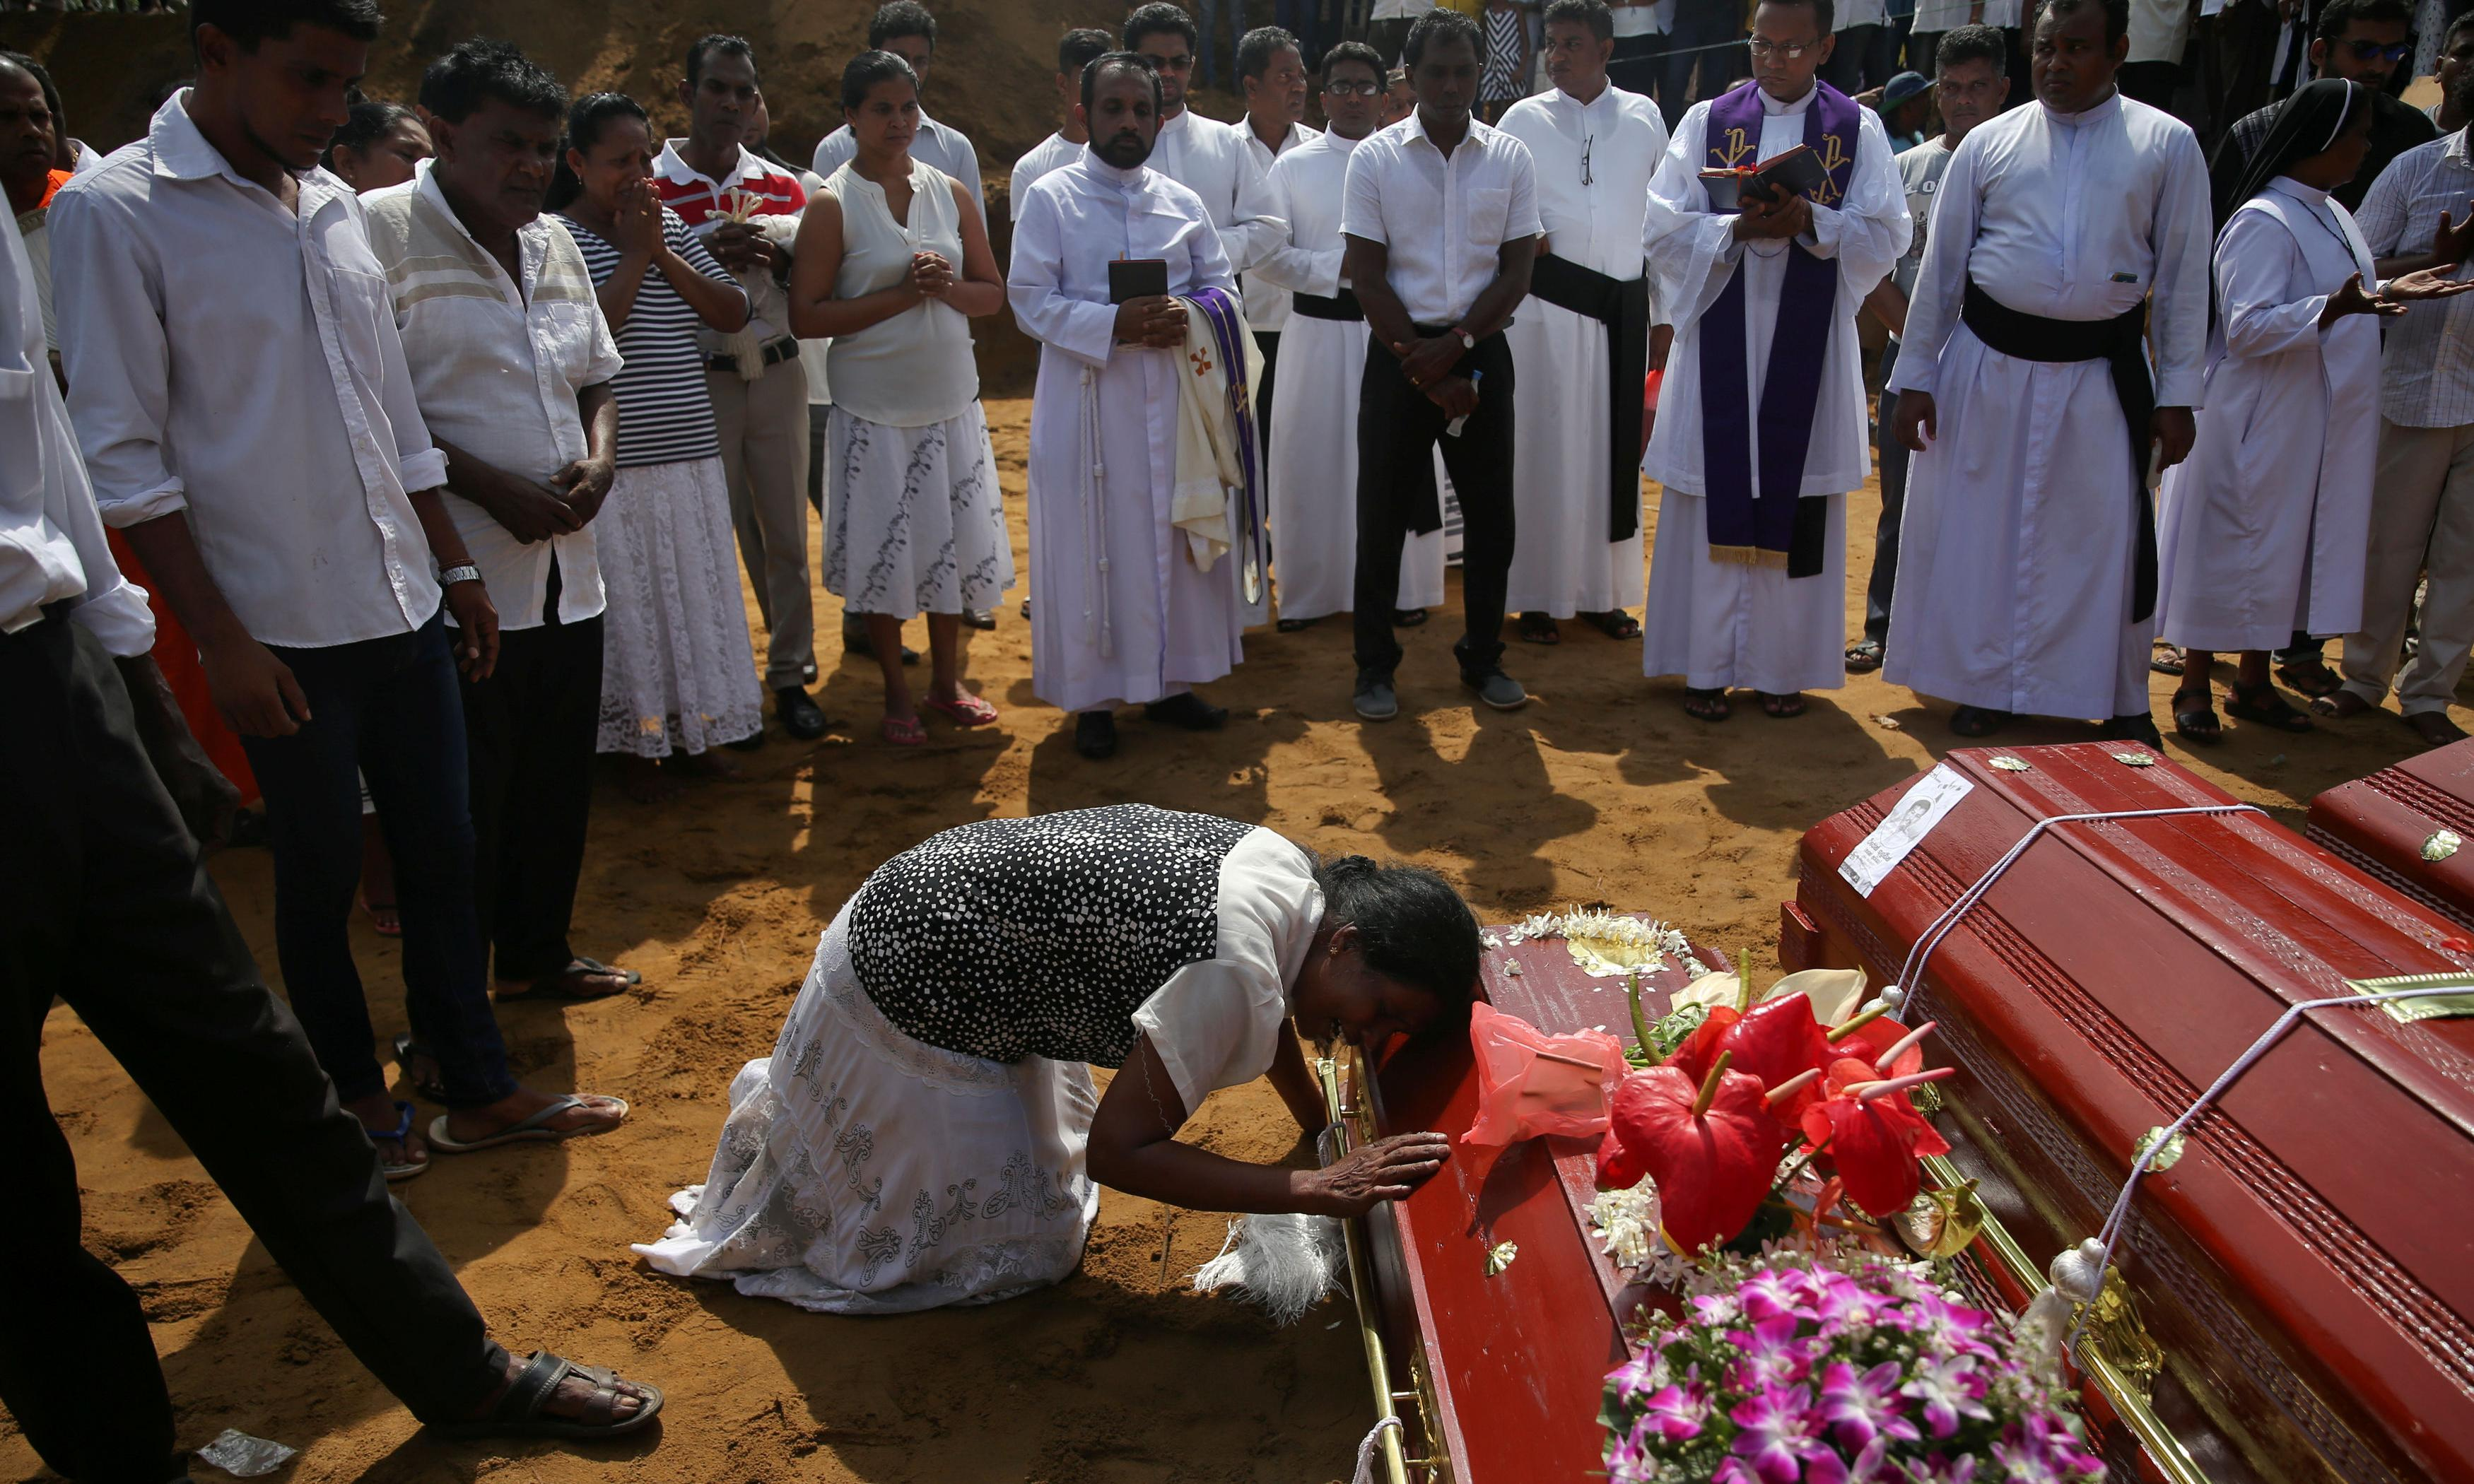 Sri Lanka bombings: first burials take place on day of mourning